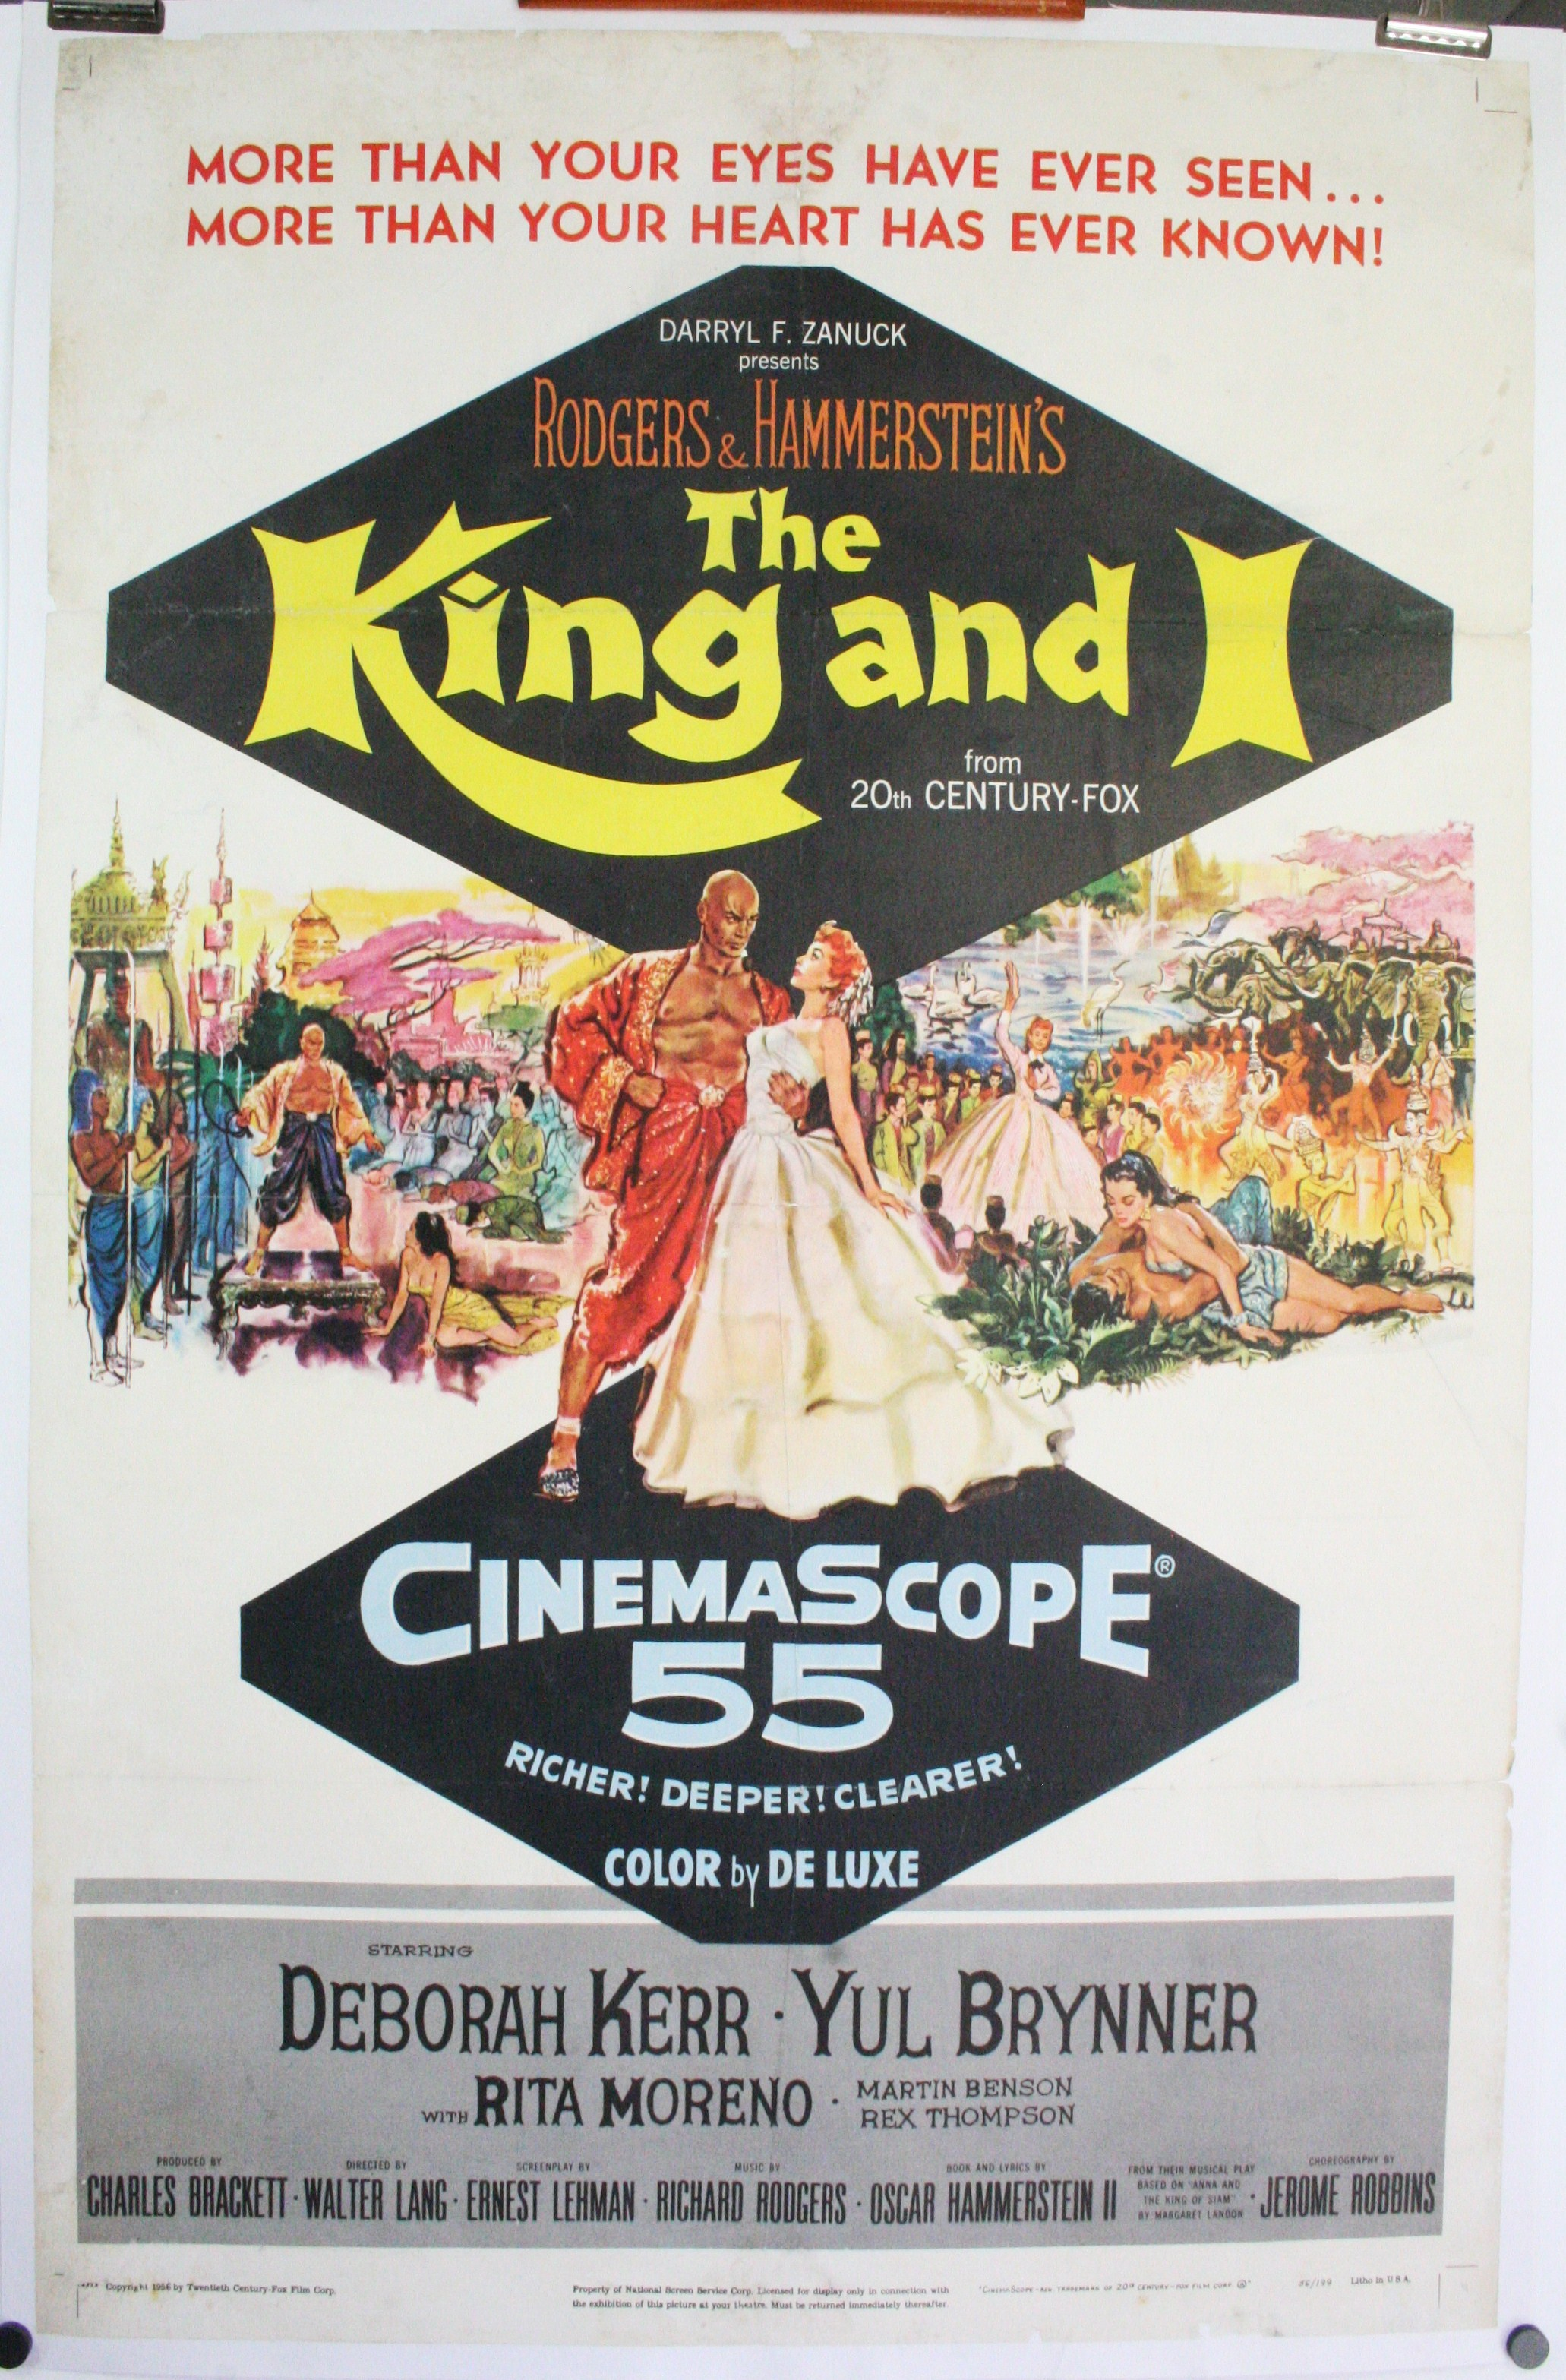 THE KING AND I, Original Rodgers and Hammerstein Musical